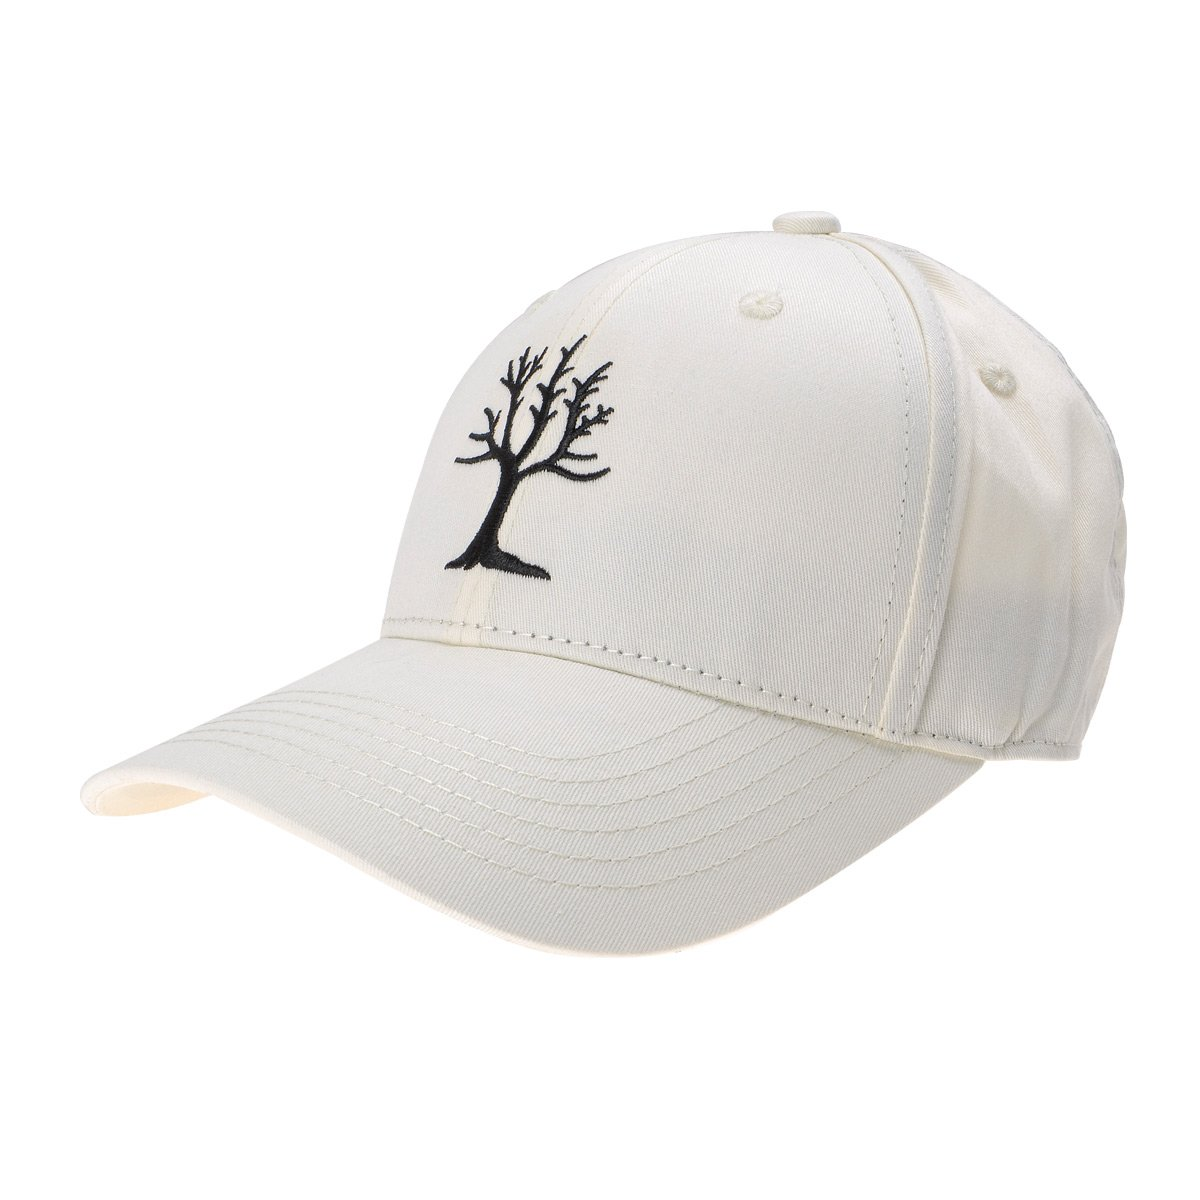 d5ac2701105 ZLYC Adjustable Cotton Baseball Cap Hat Fashion Embroidered for Men Women